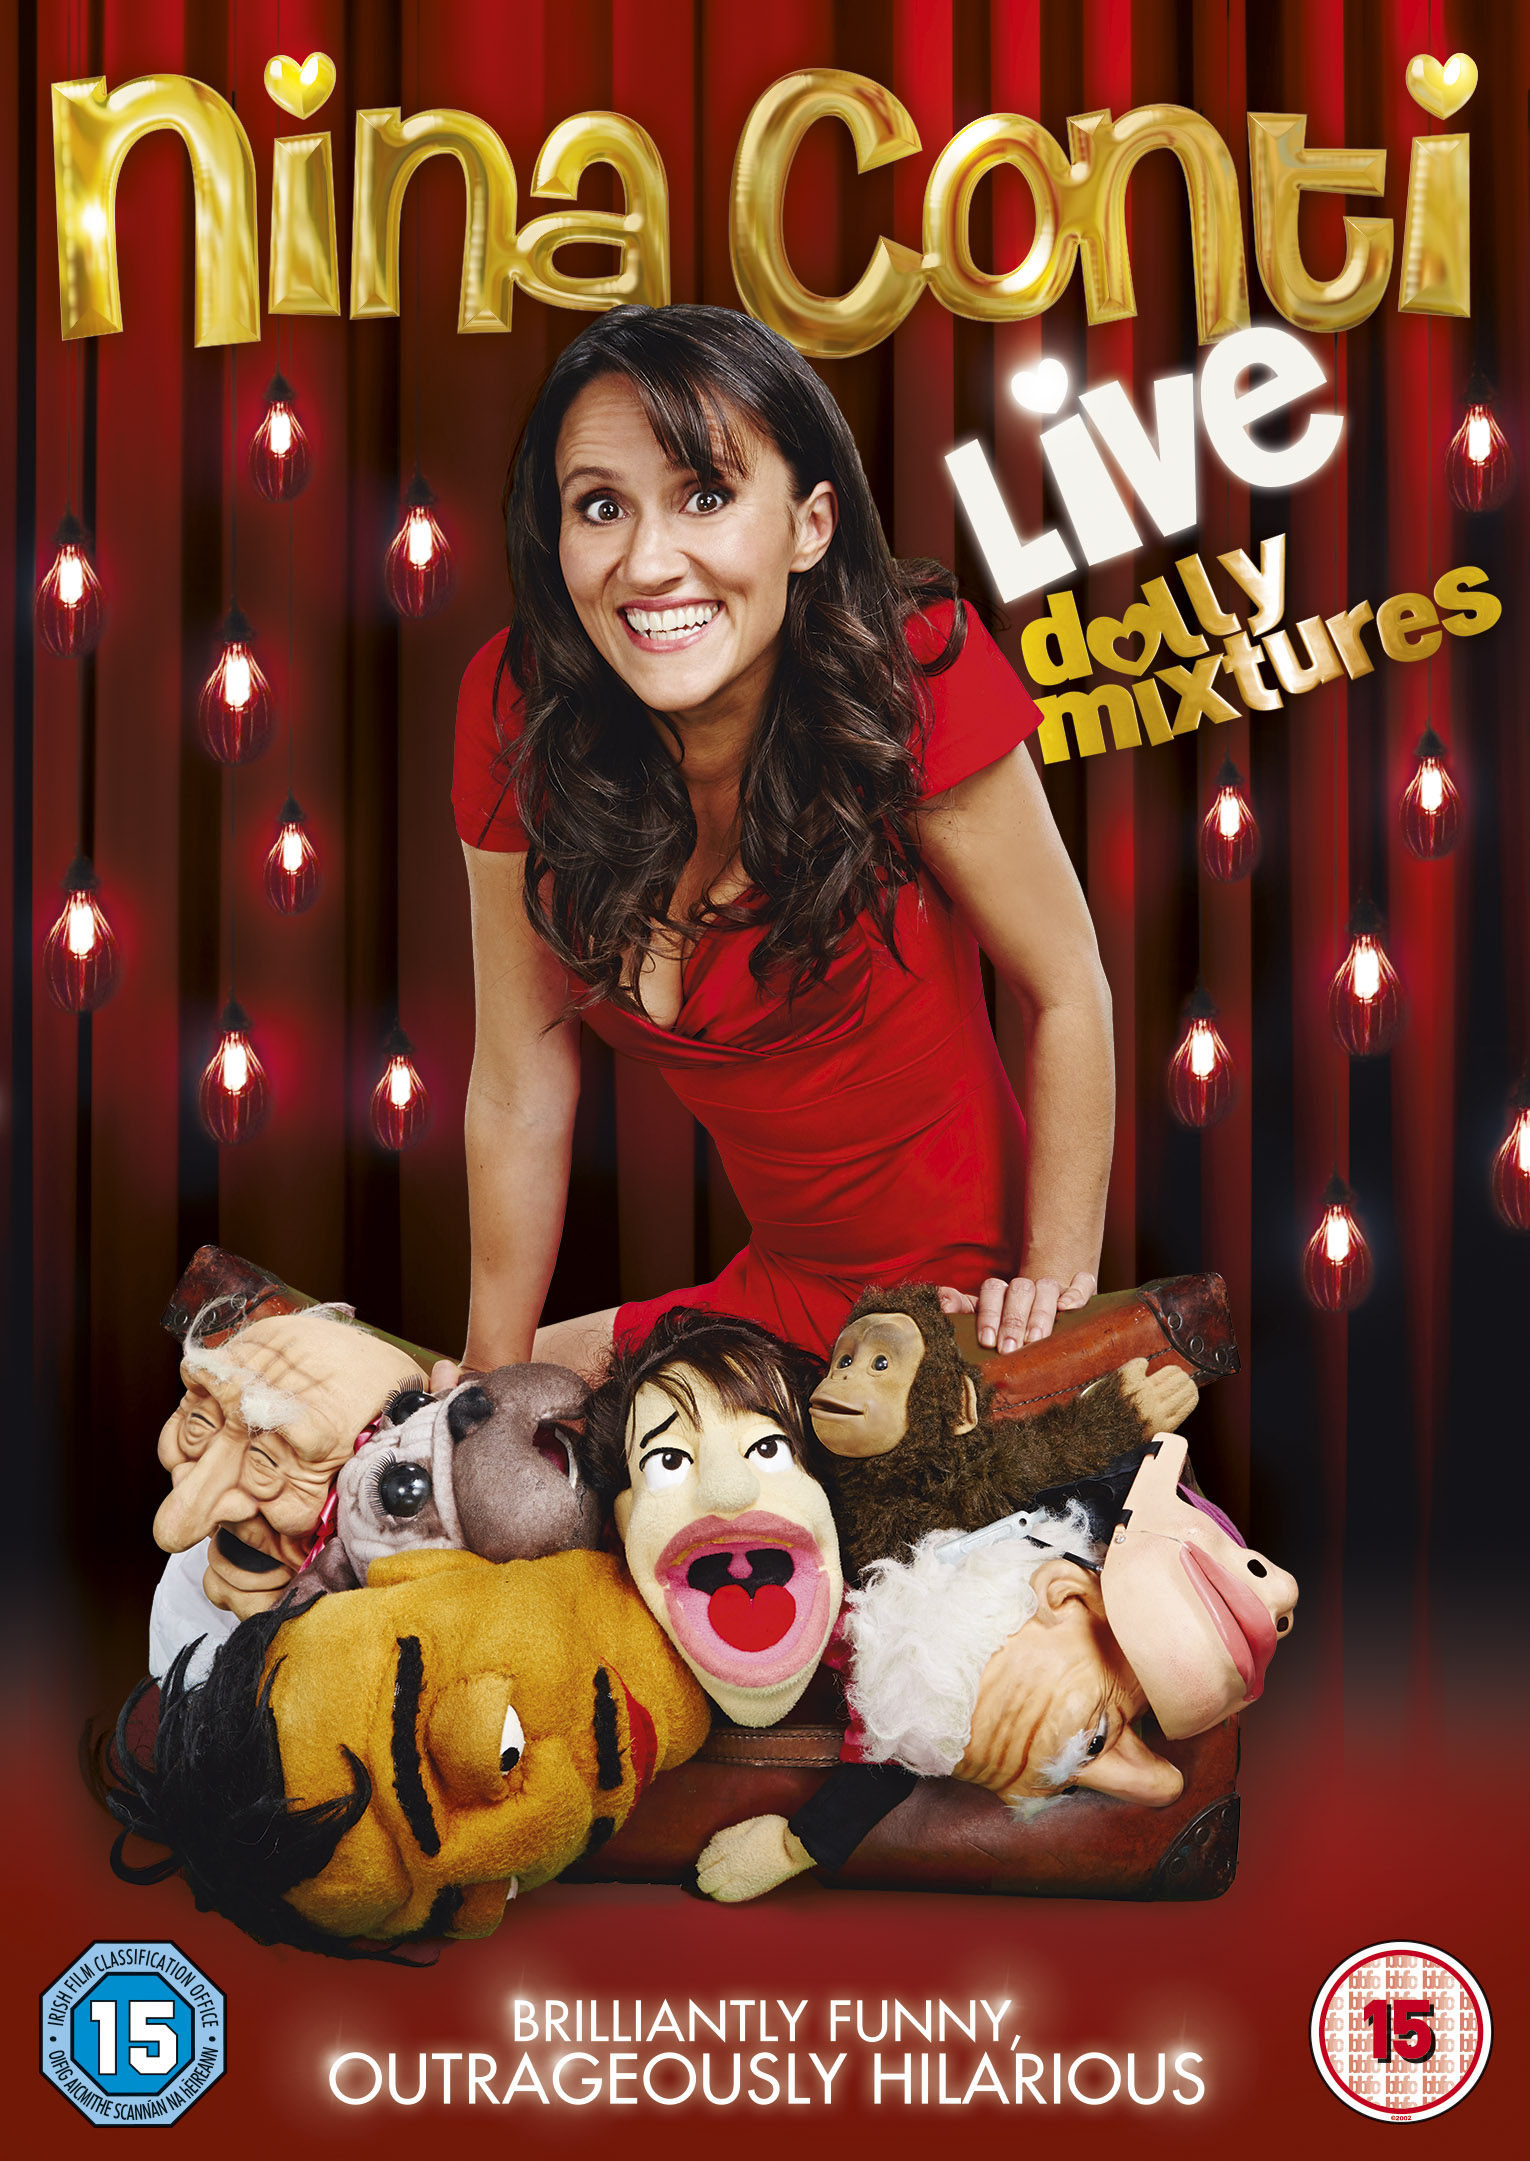 Review: Nina Conti Live – Dolly Mixtures